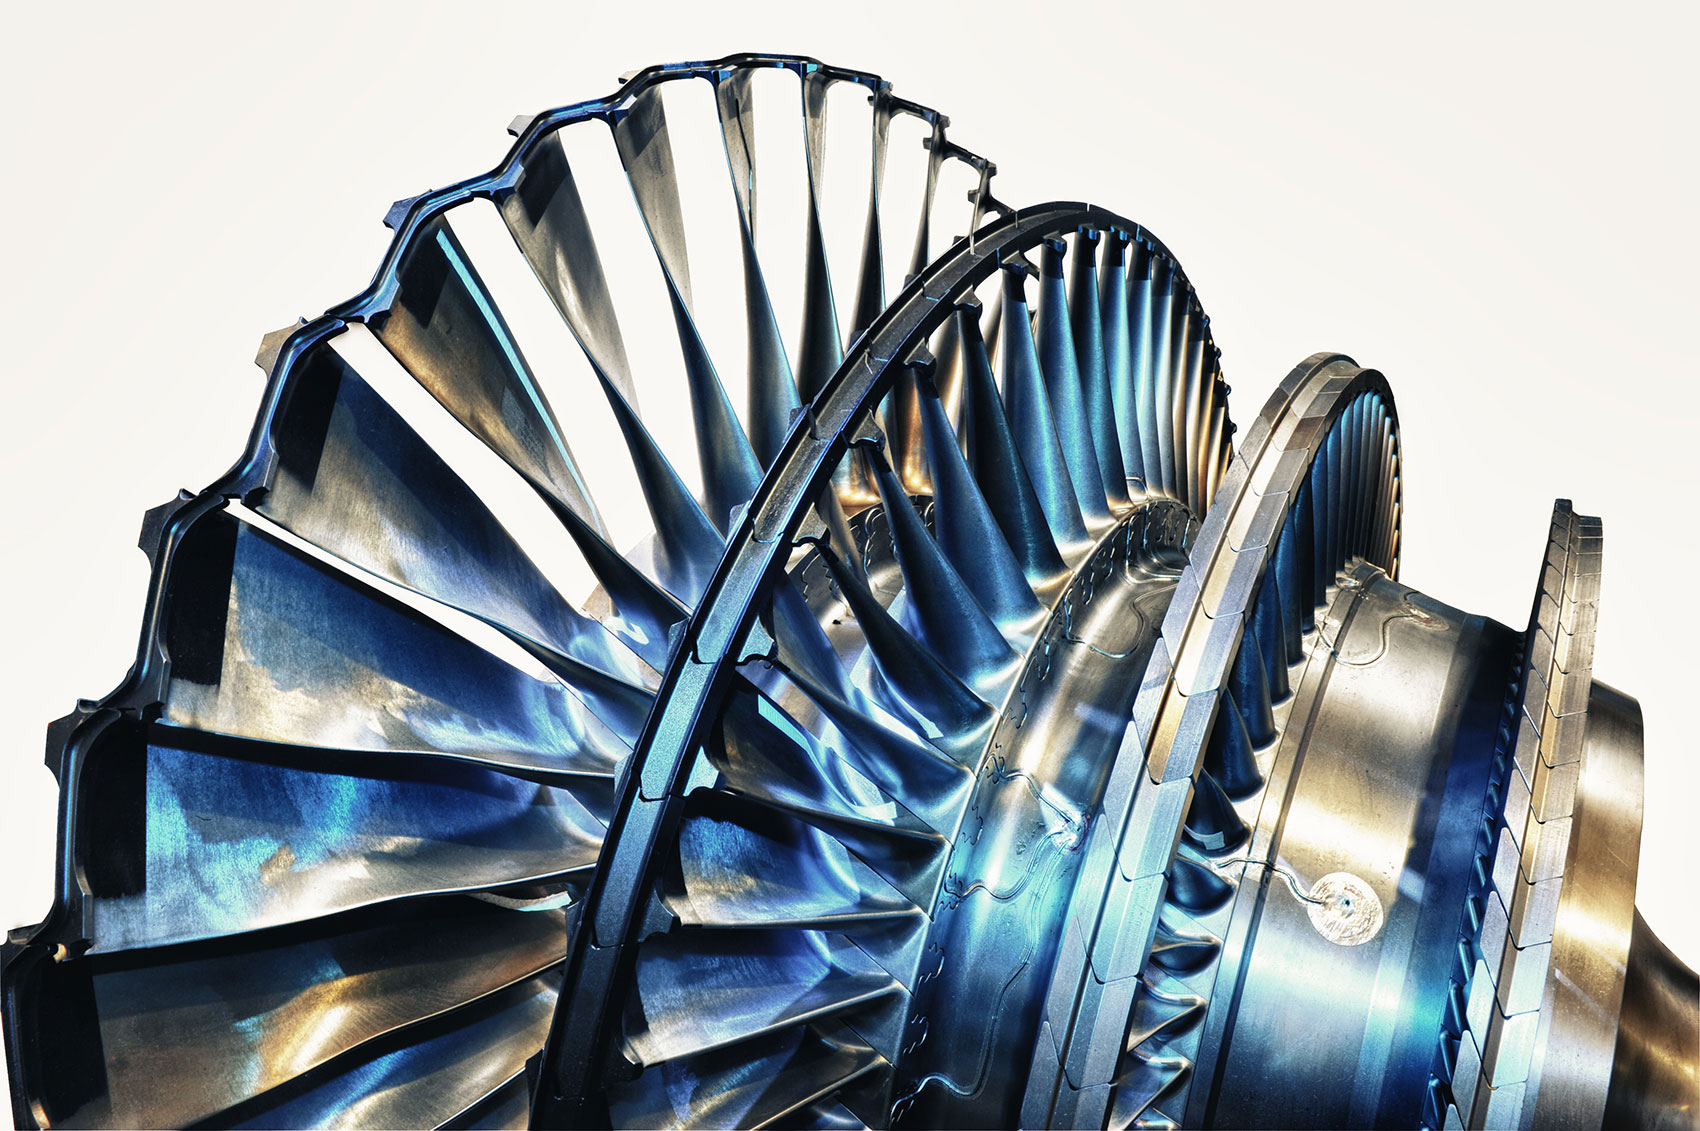 Compressor-rotor-detail-Steam-Turbine_17700